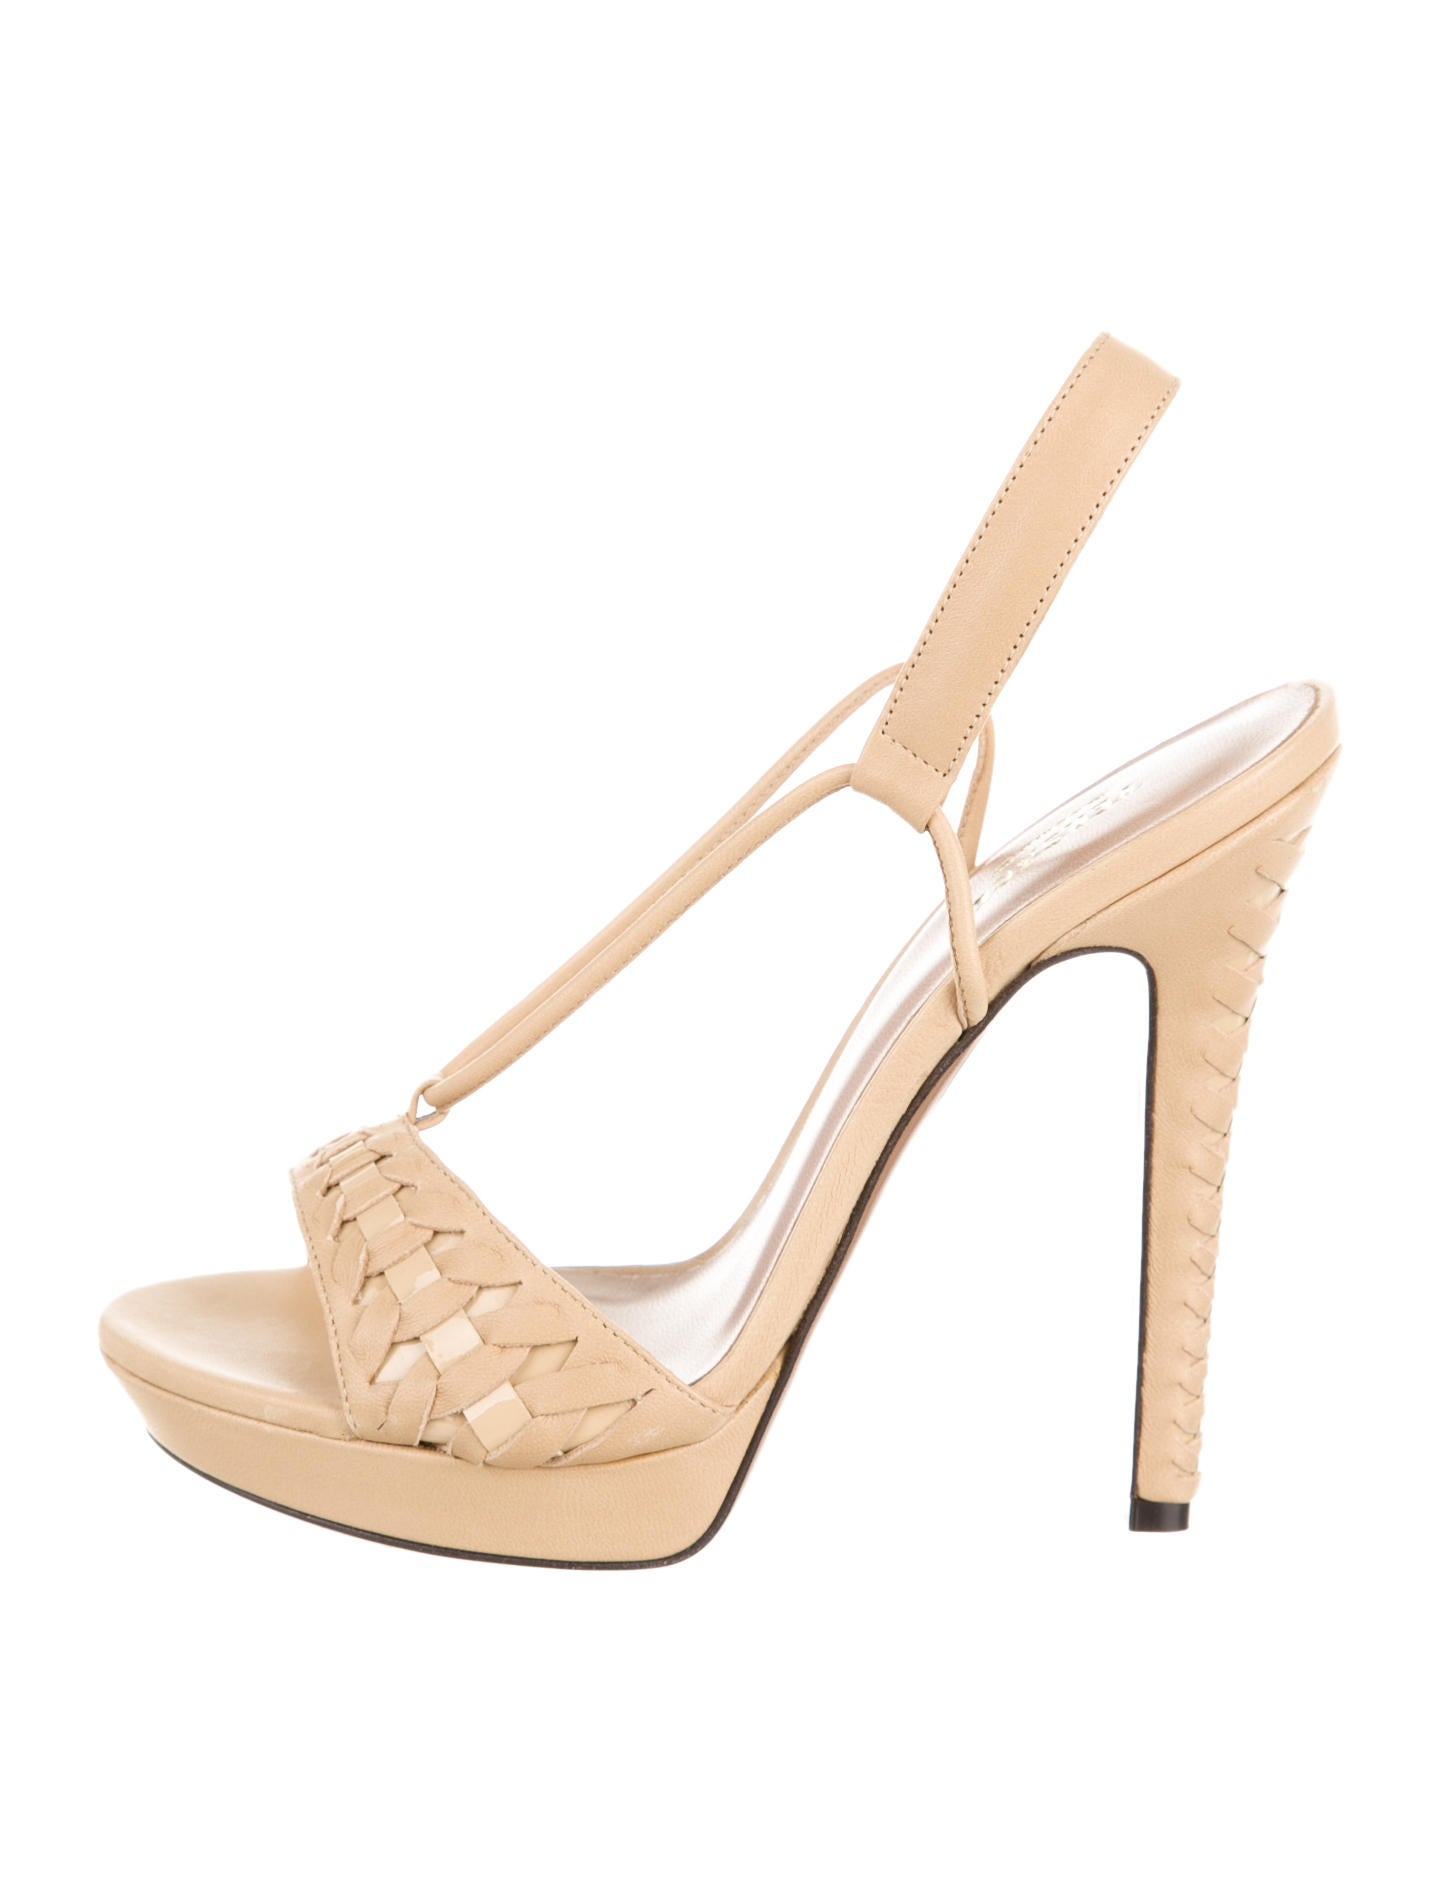 Model Versace Womens Studded Strappy Sandals  Wwwqclothcom